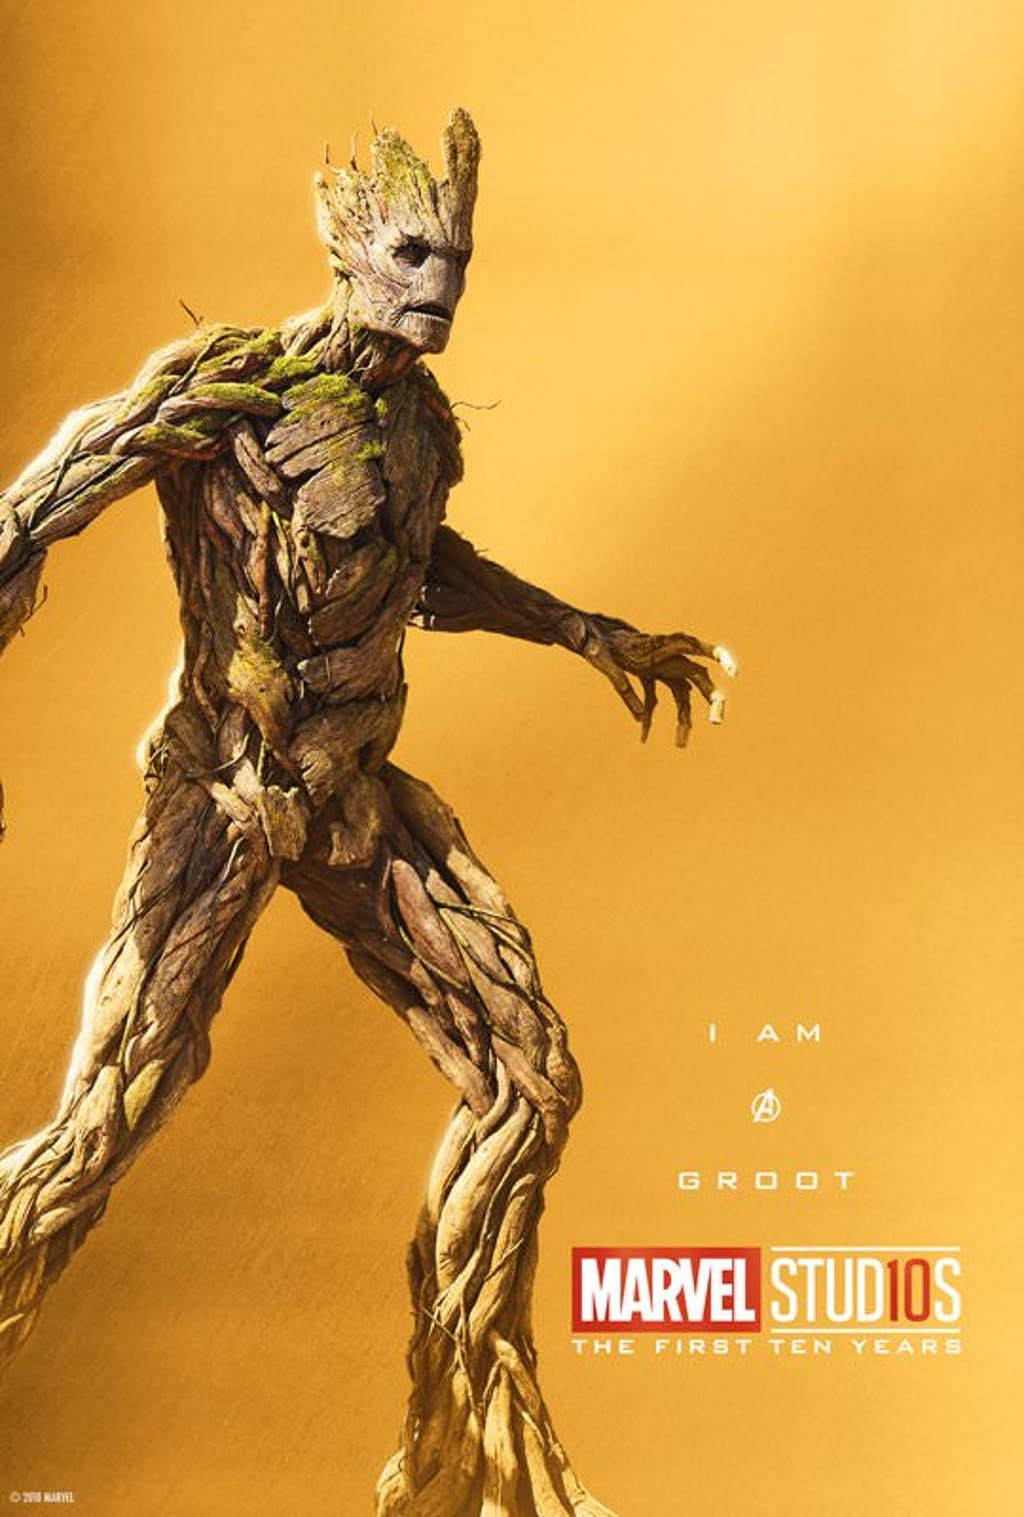 10th-Anniversary Marvel Cinematic Universe Posters Revealed By Marvel Studios https://t.co/YxoixTsiwz https://t.co/wastlZQqIE